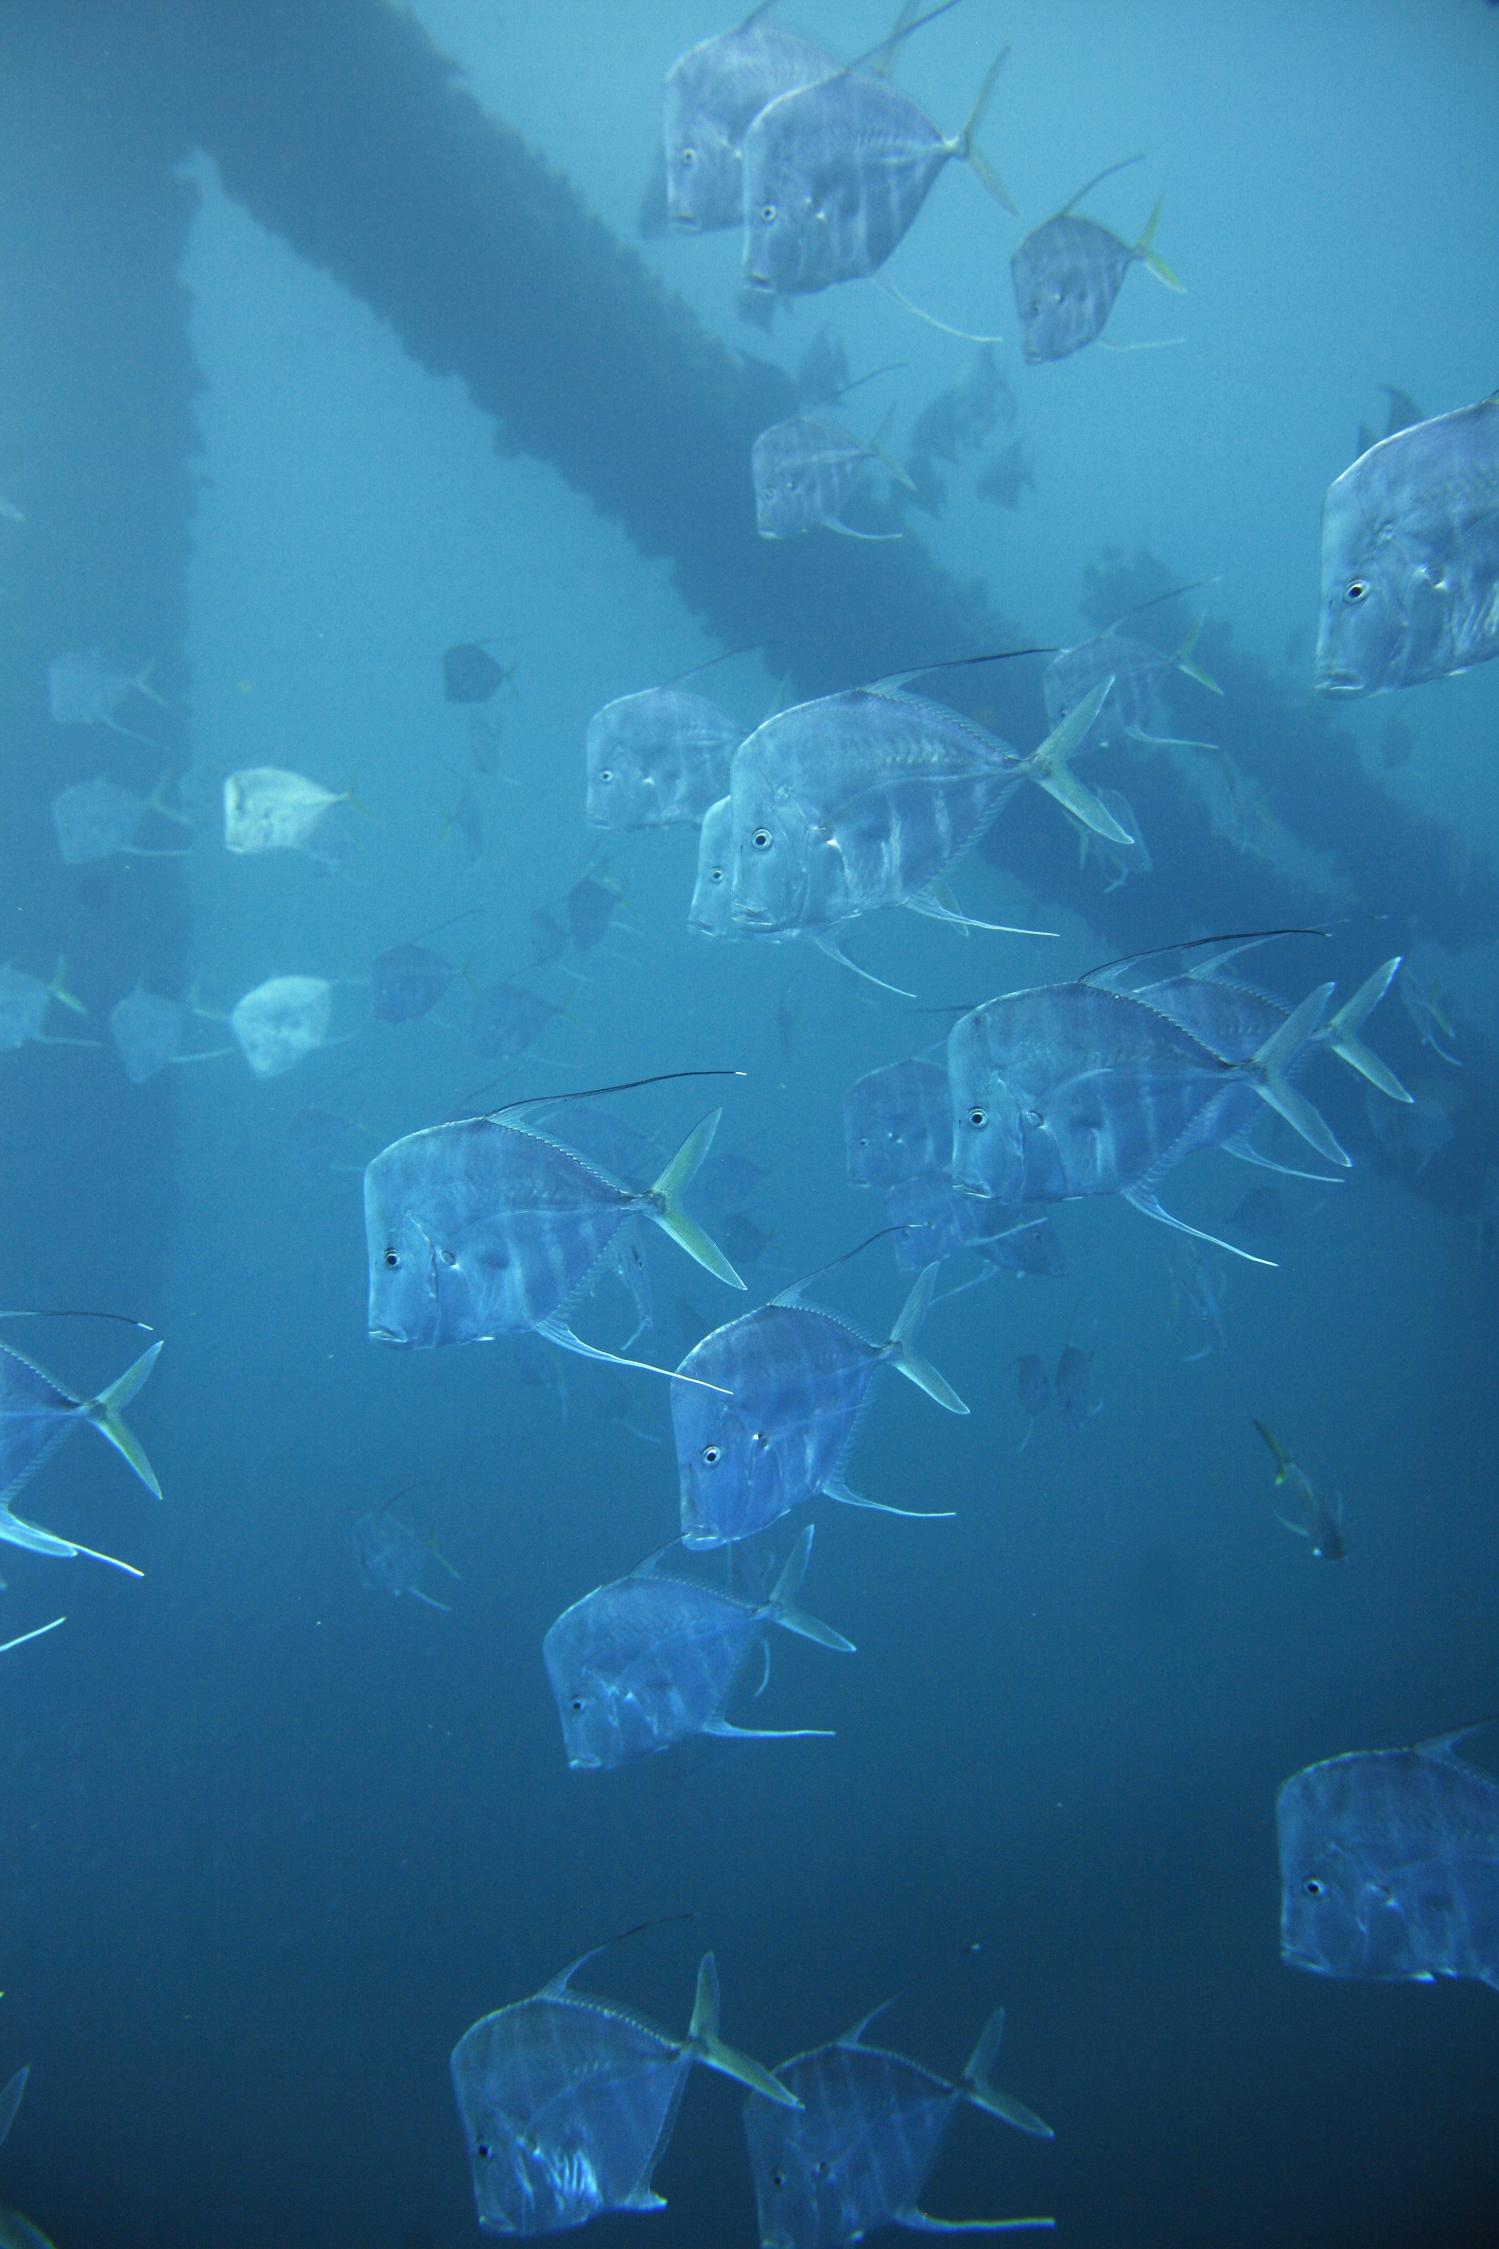 What Could Scientists Learn About >> Scientists discover new camouflage mechanism fish use in open ocean